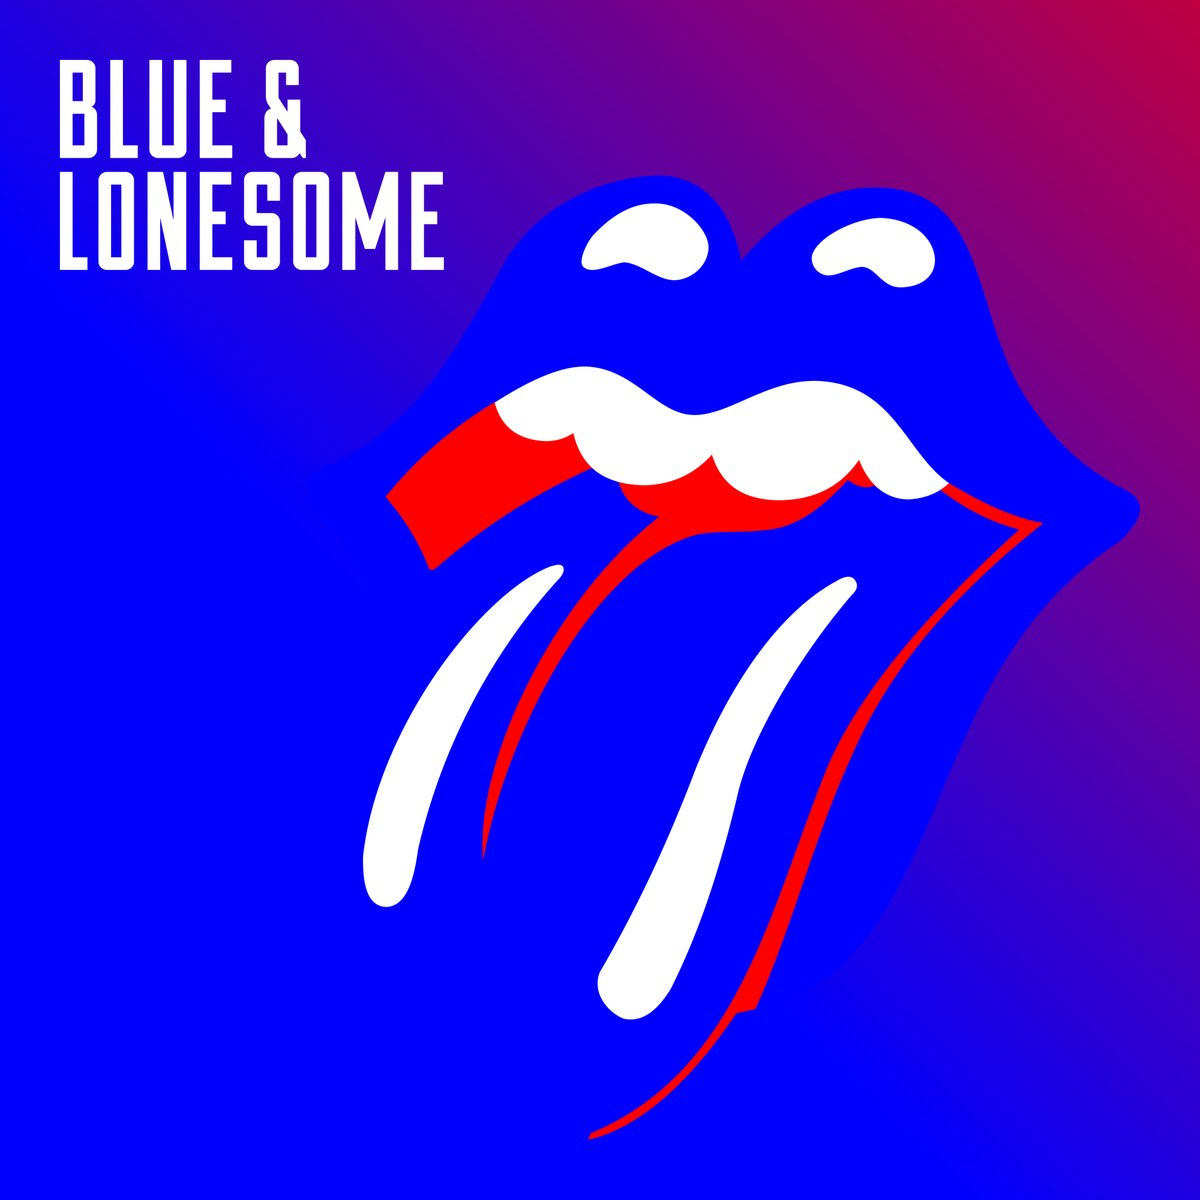 image of The Rolling Stones Blue and Lonesome album cover